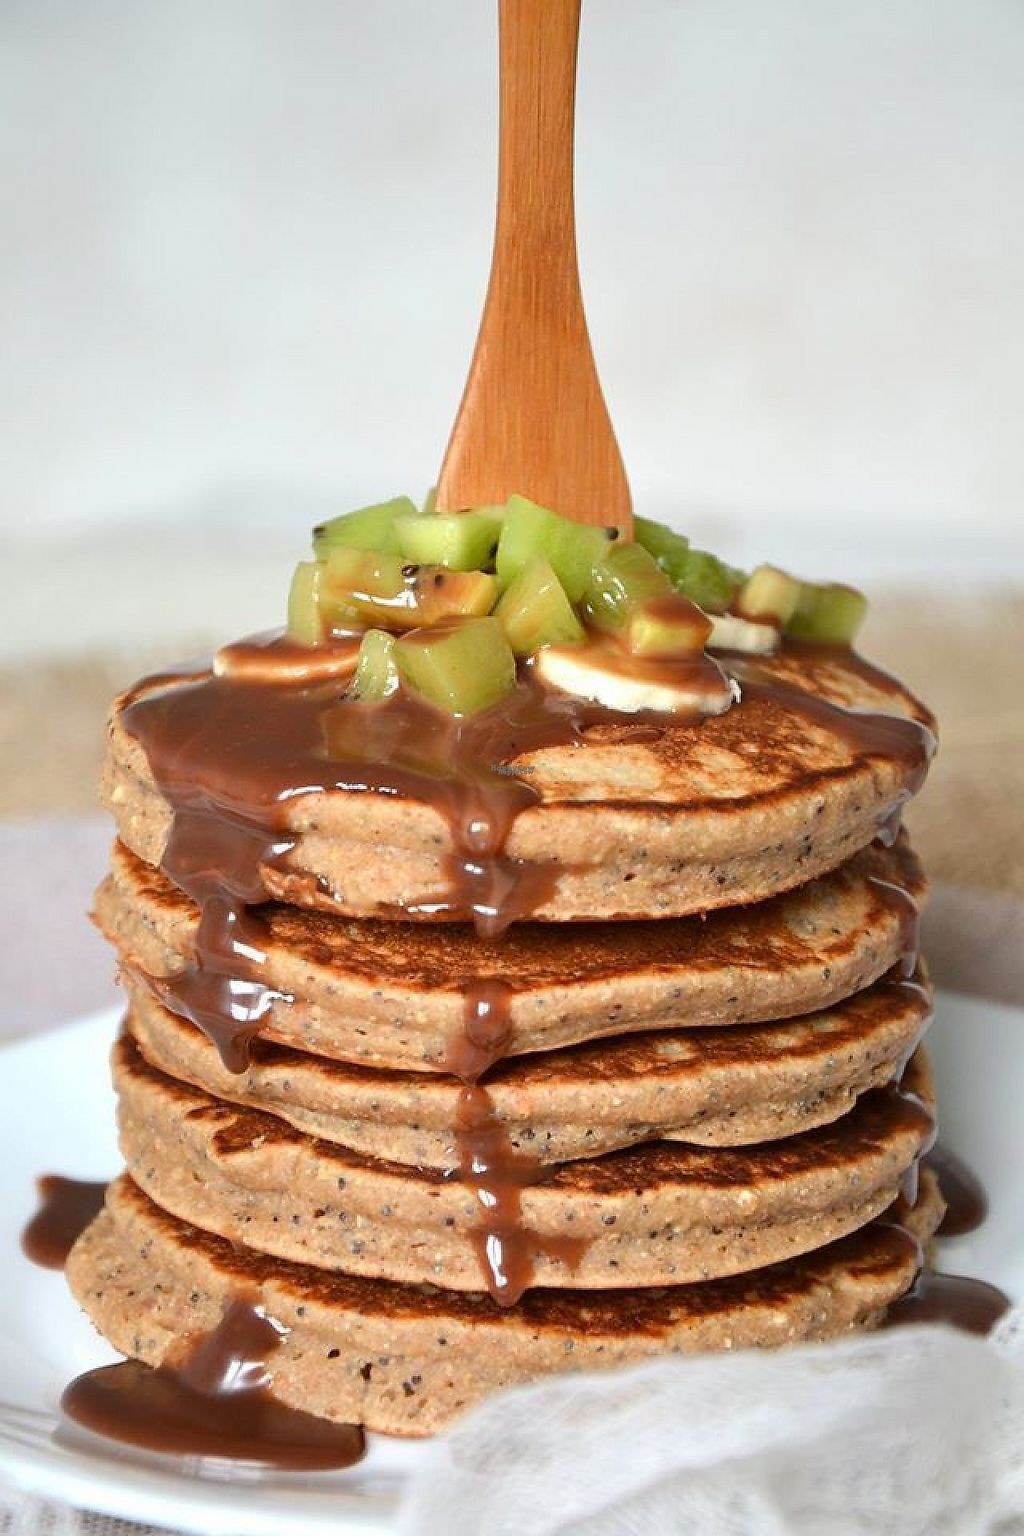 """Photo of La Vie Claire - Gerland  by <a href=""""/members/profile/community"""">community</a> <br/>vegan pancakes  <br/> February 4, 2017  - <a href='/contact/abuse/image/68746/221914'>Report</a>"""